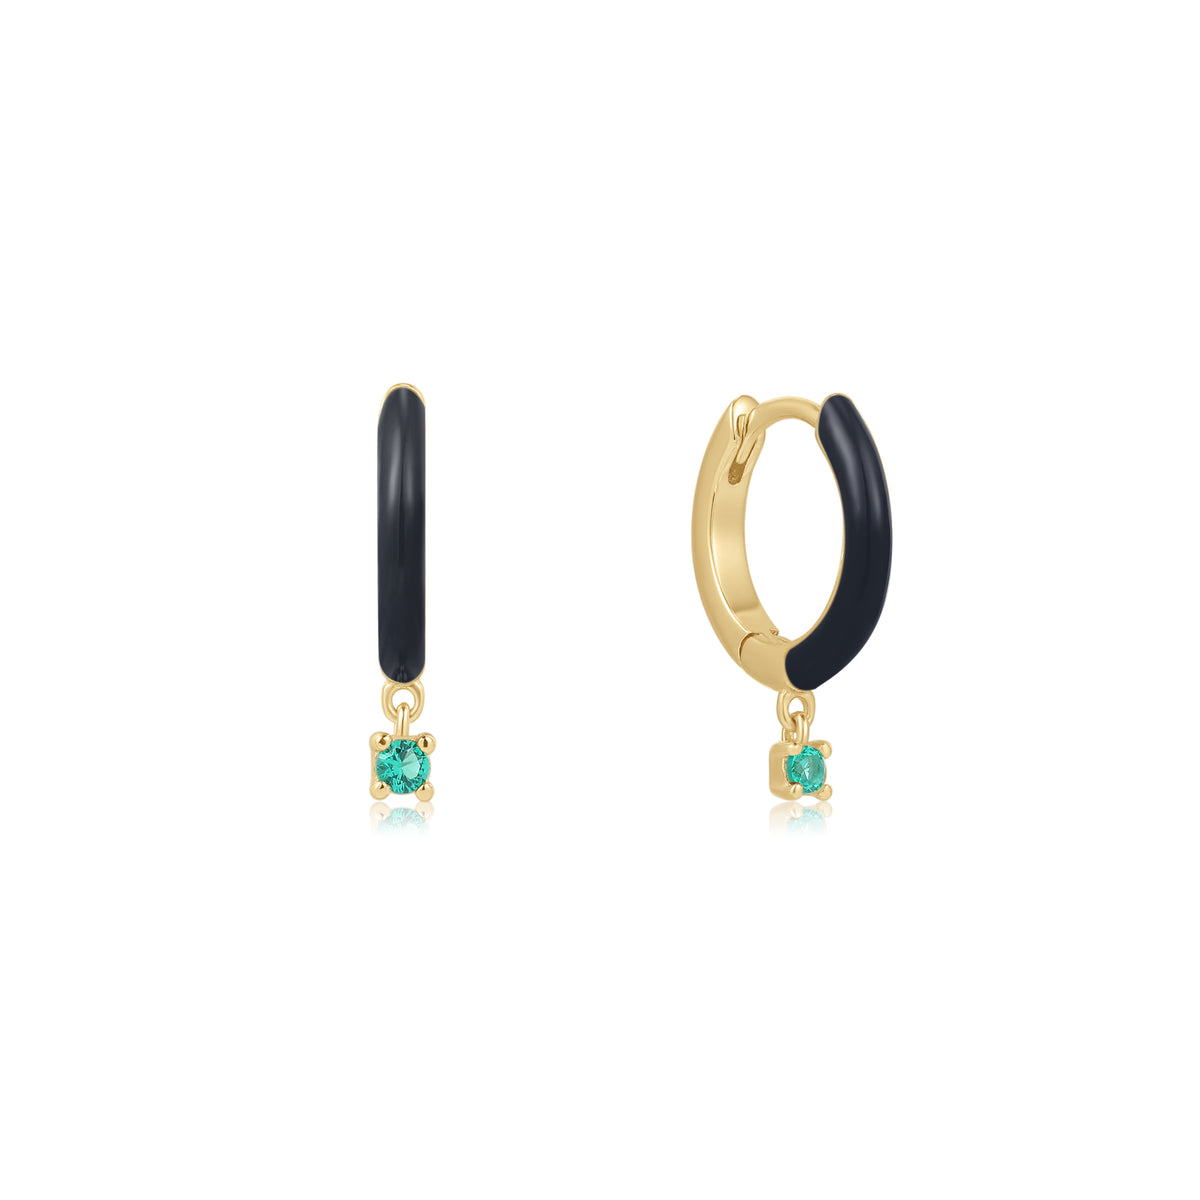 Cardea | Matsutake Earrings | 925 Silver | Black Enamel & Emerald CZ | 14K Gold Plated